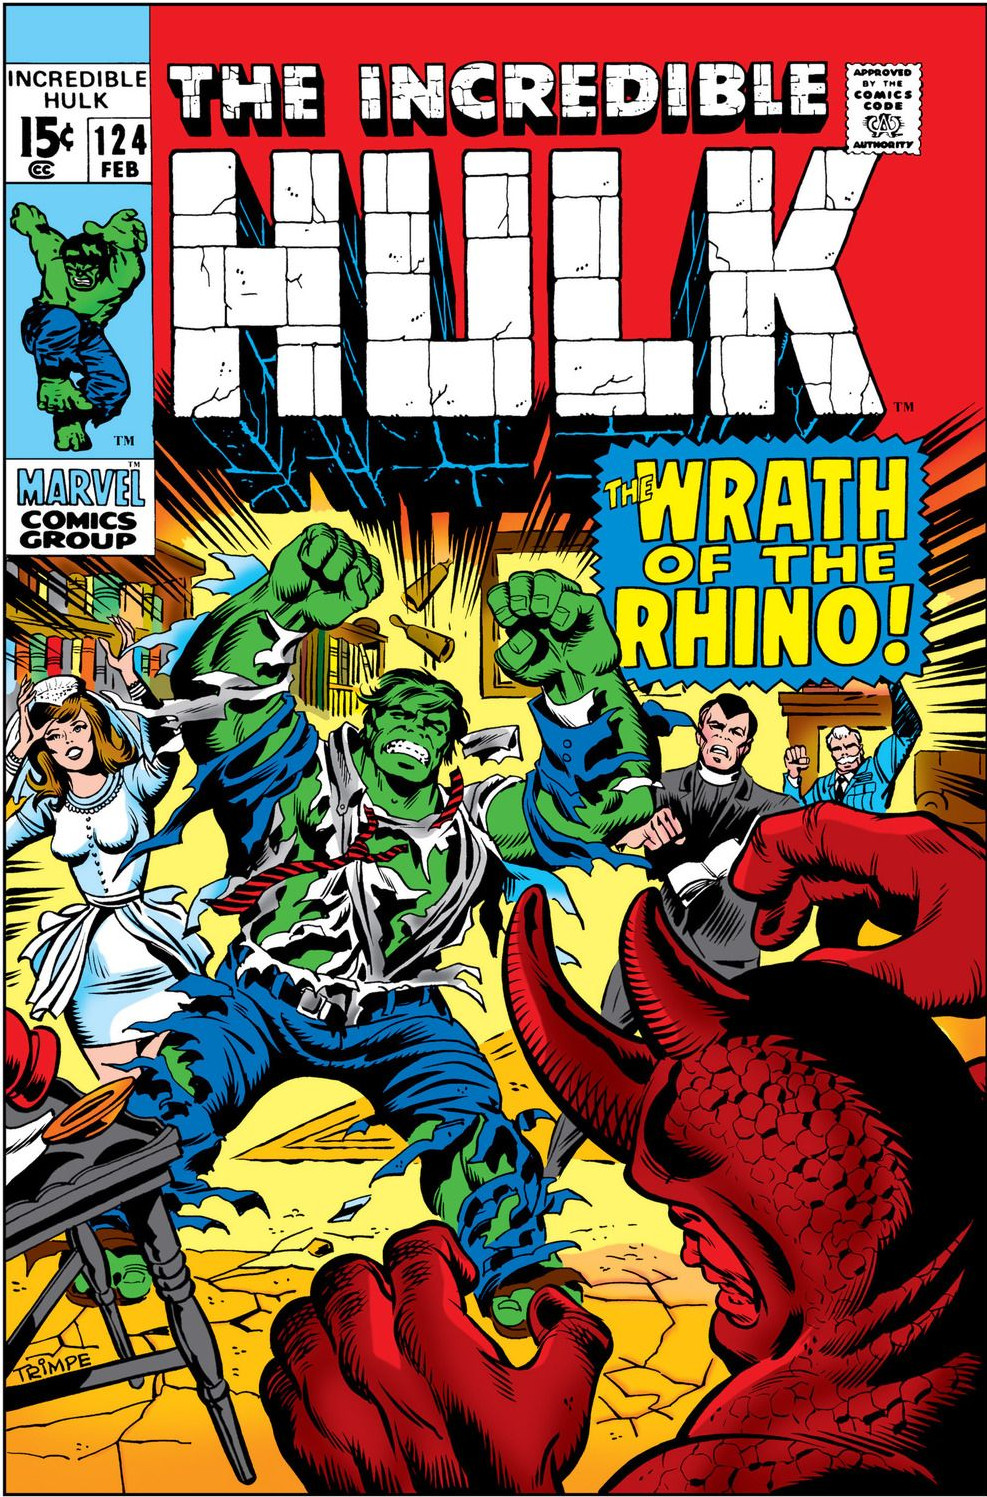 Incredible Hulk Vol 1 124.jpg